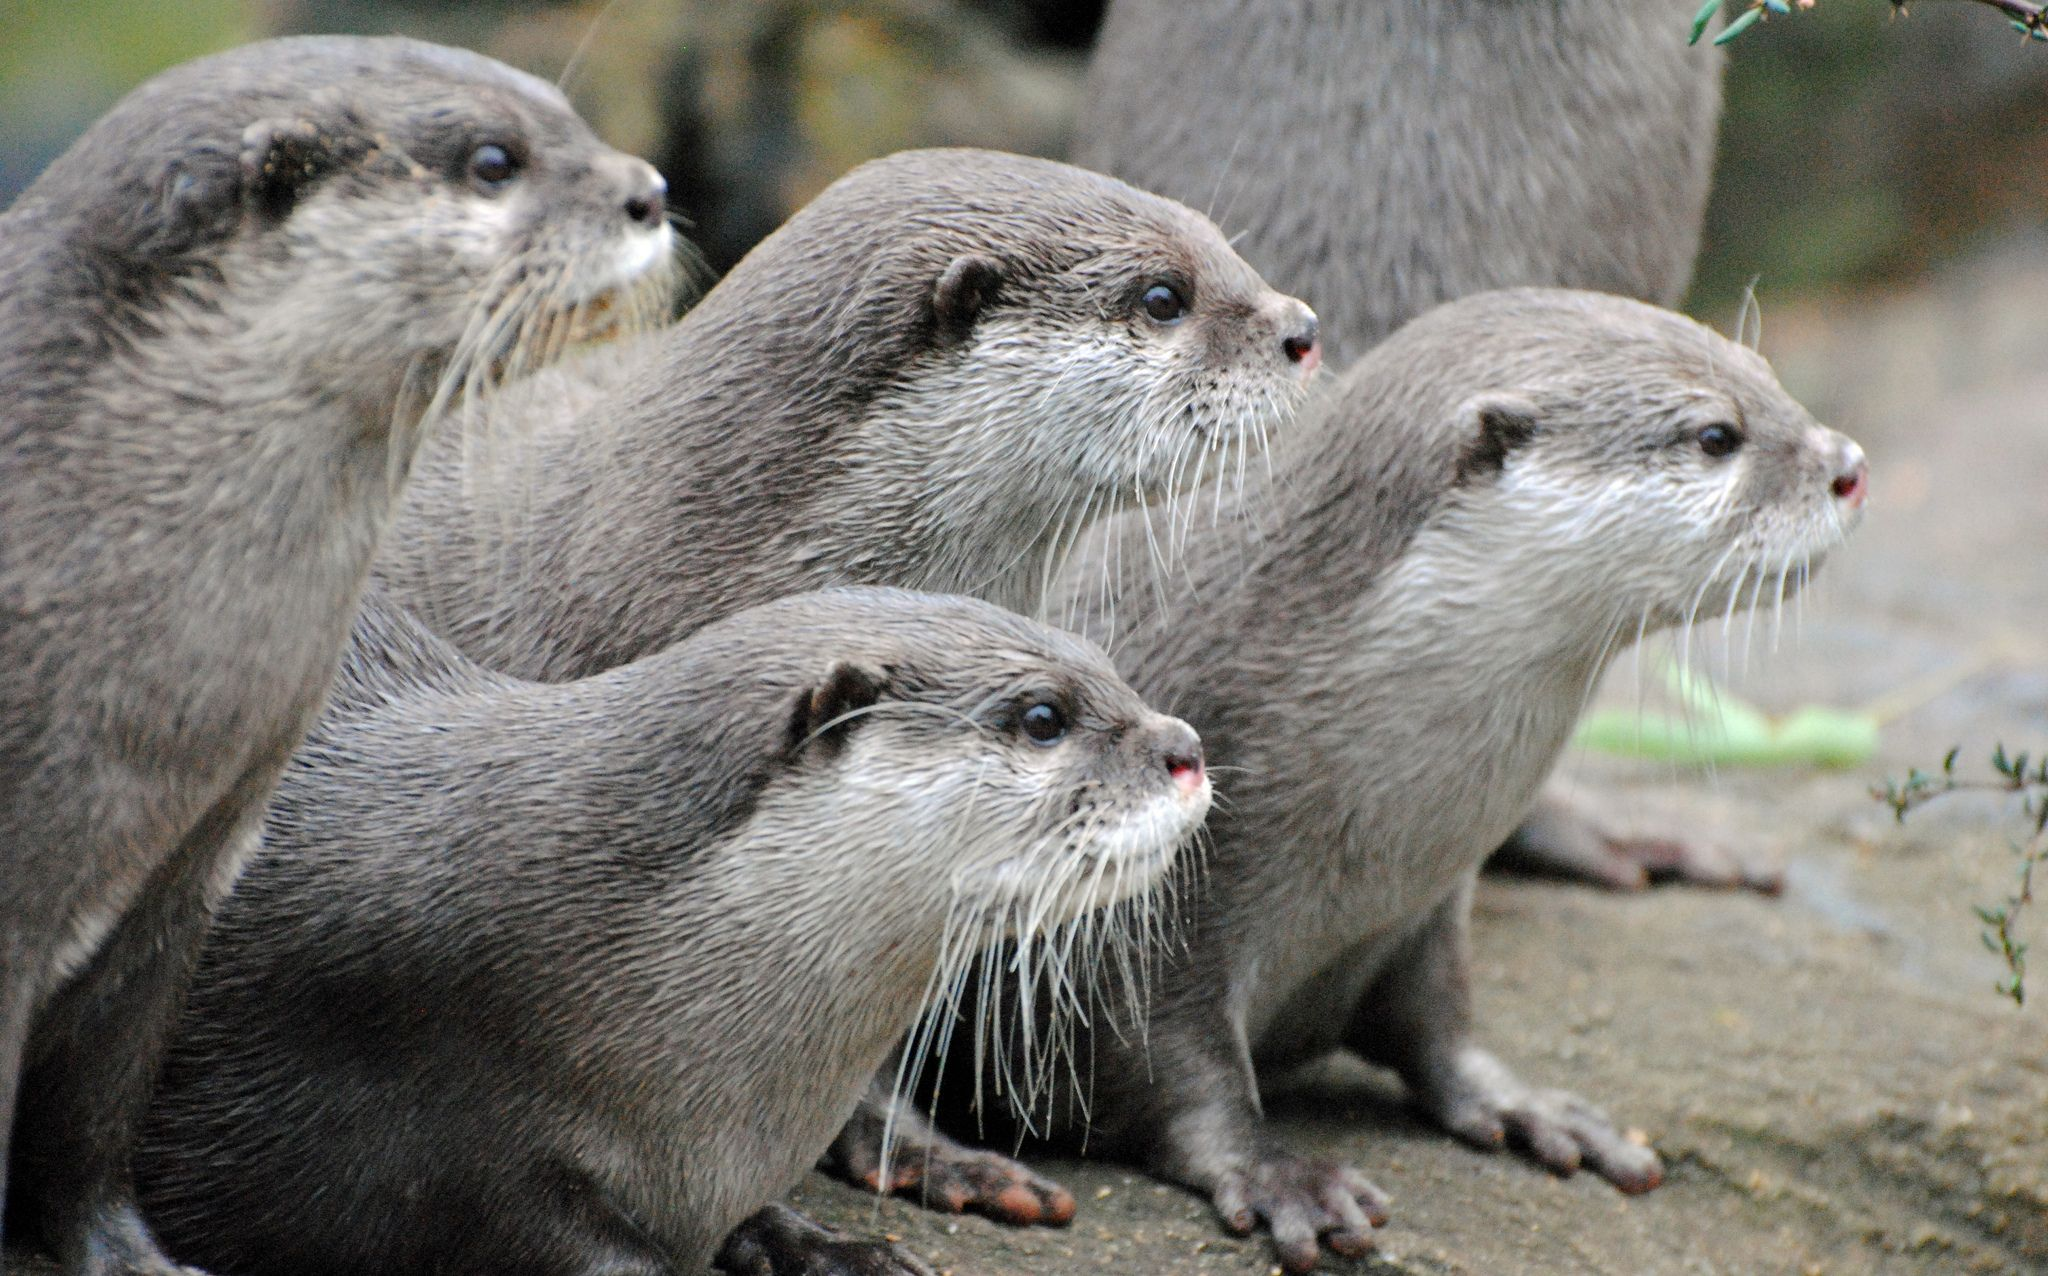 Government killed 454 otters